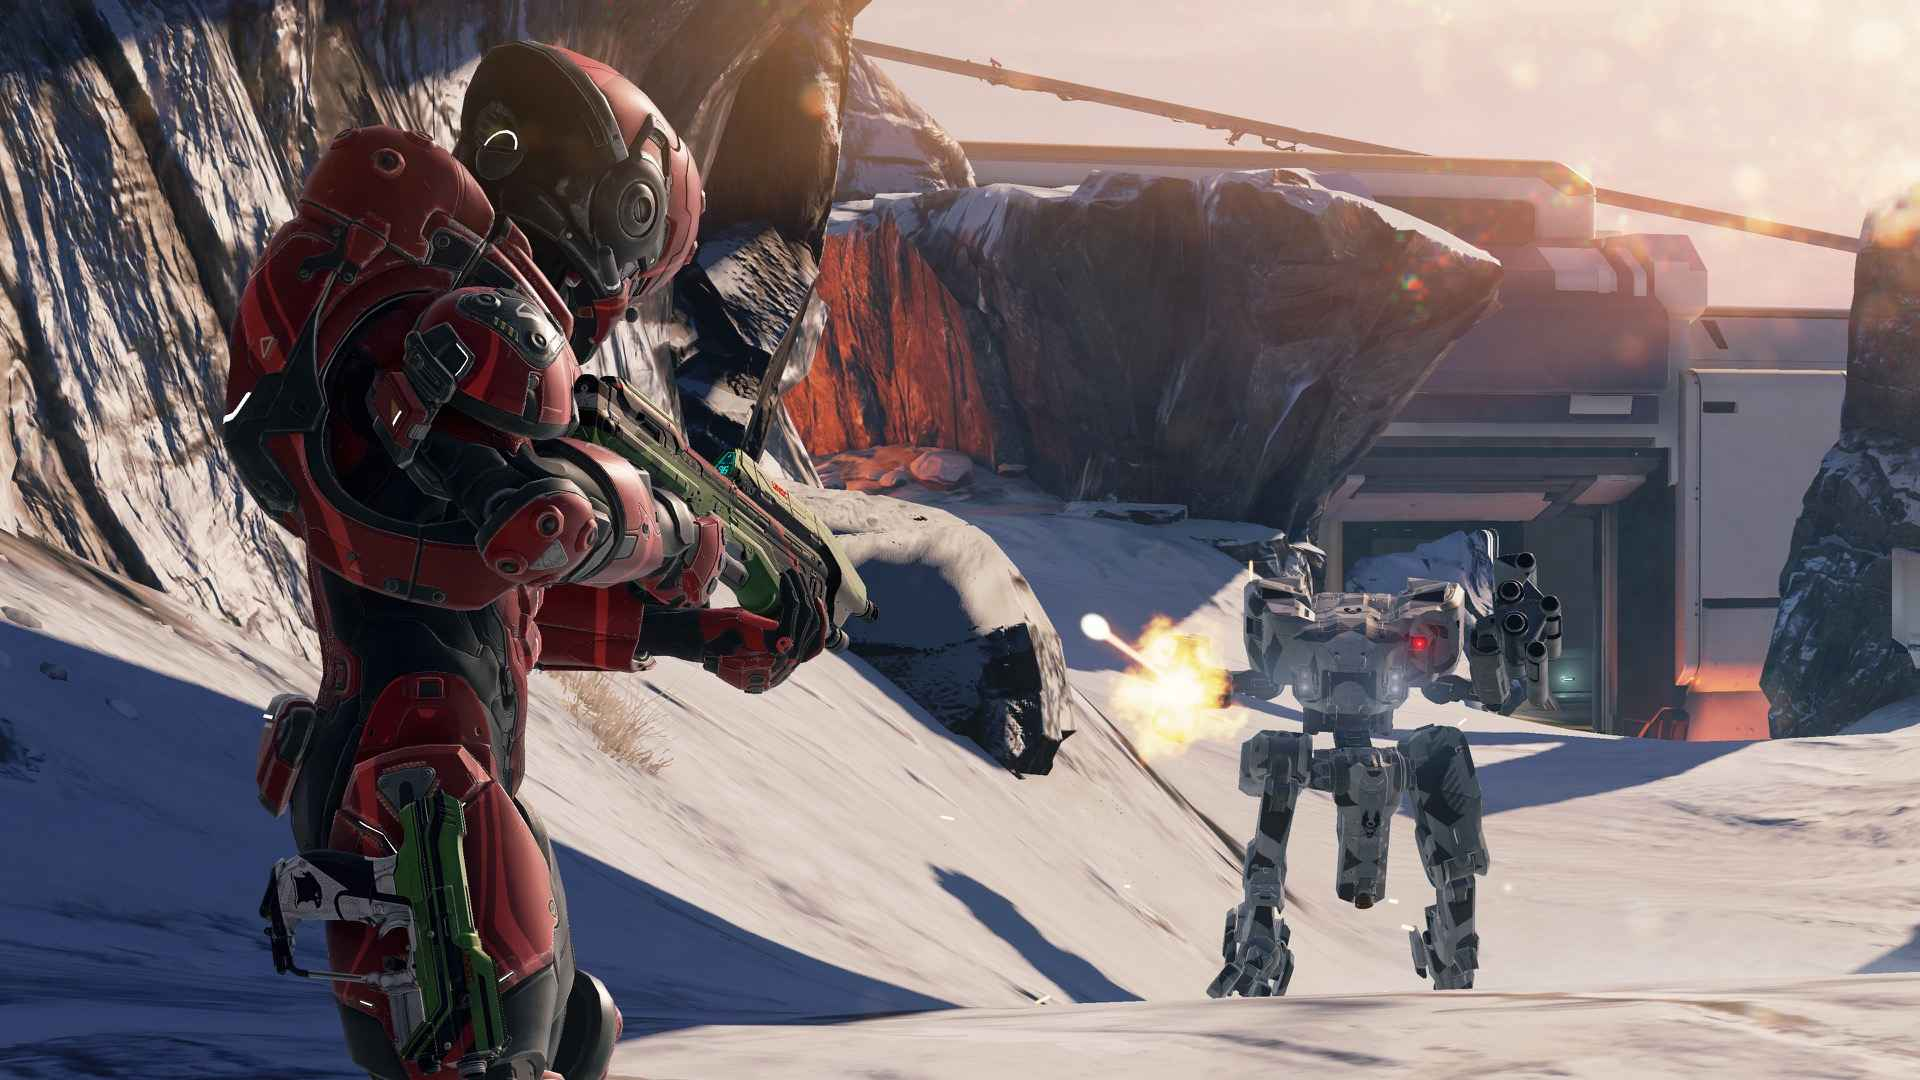 Halo 5 Is Removing A Multiplayer Playlist Very Soon